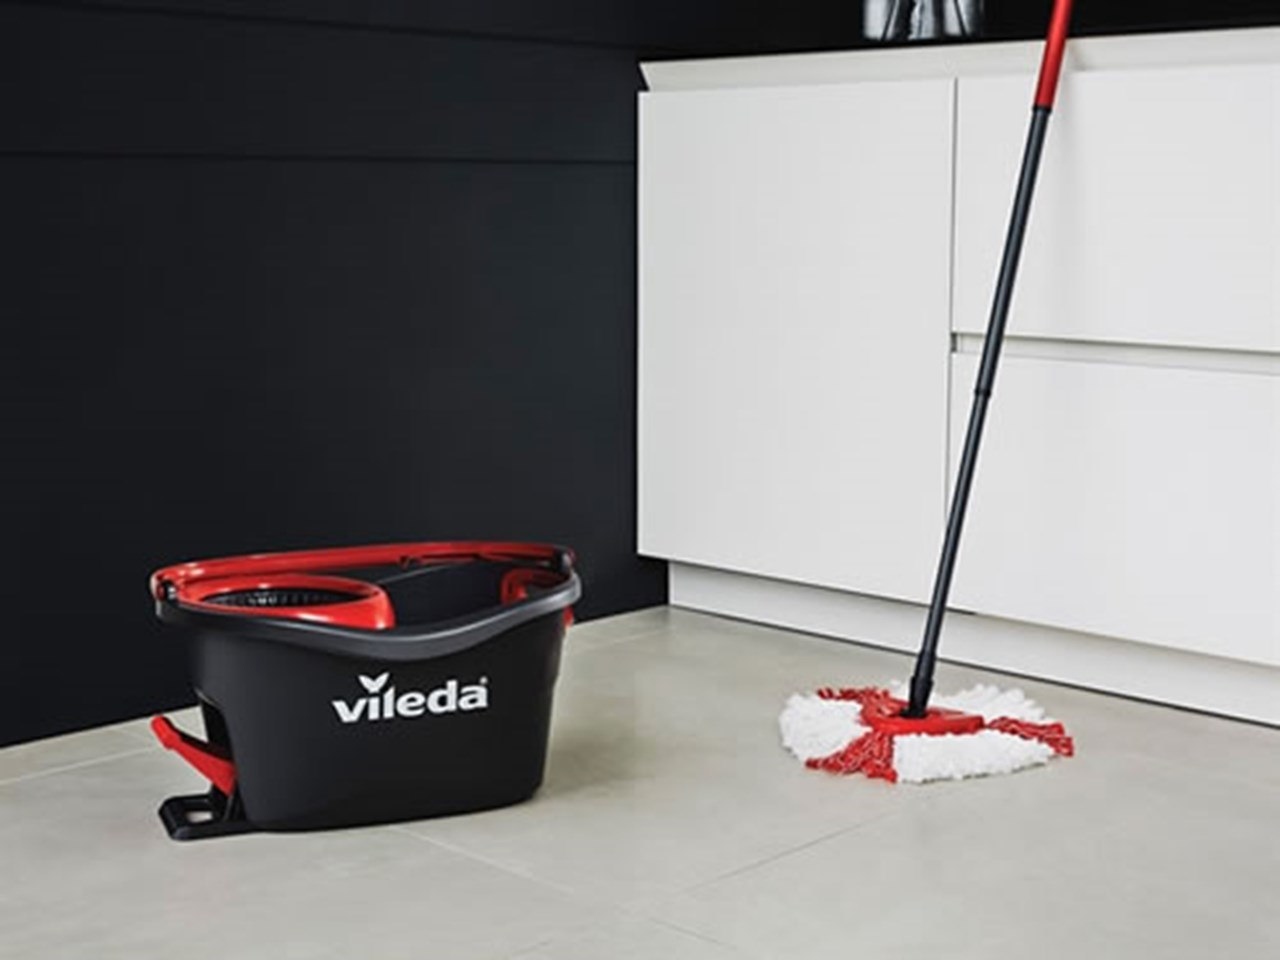 vileda vil155675 easy wring and clean turbo mop bucket. Black Bedroom Furniture Sets. Home Design Ideas